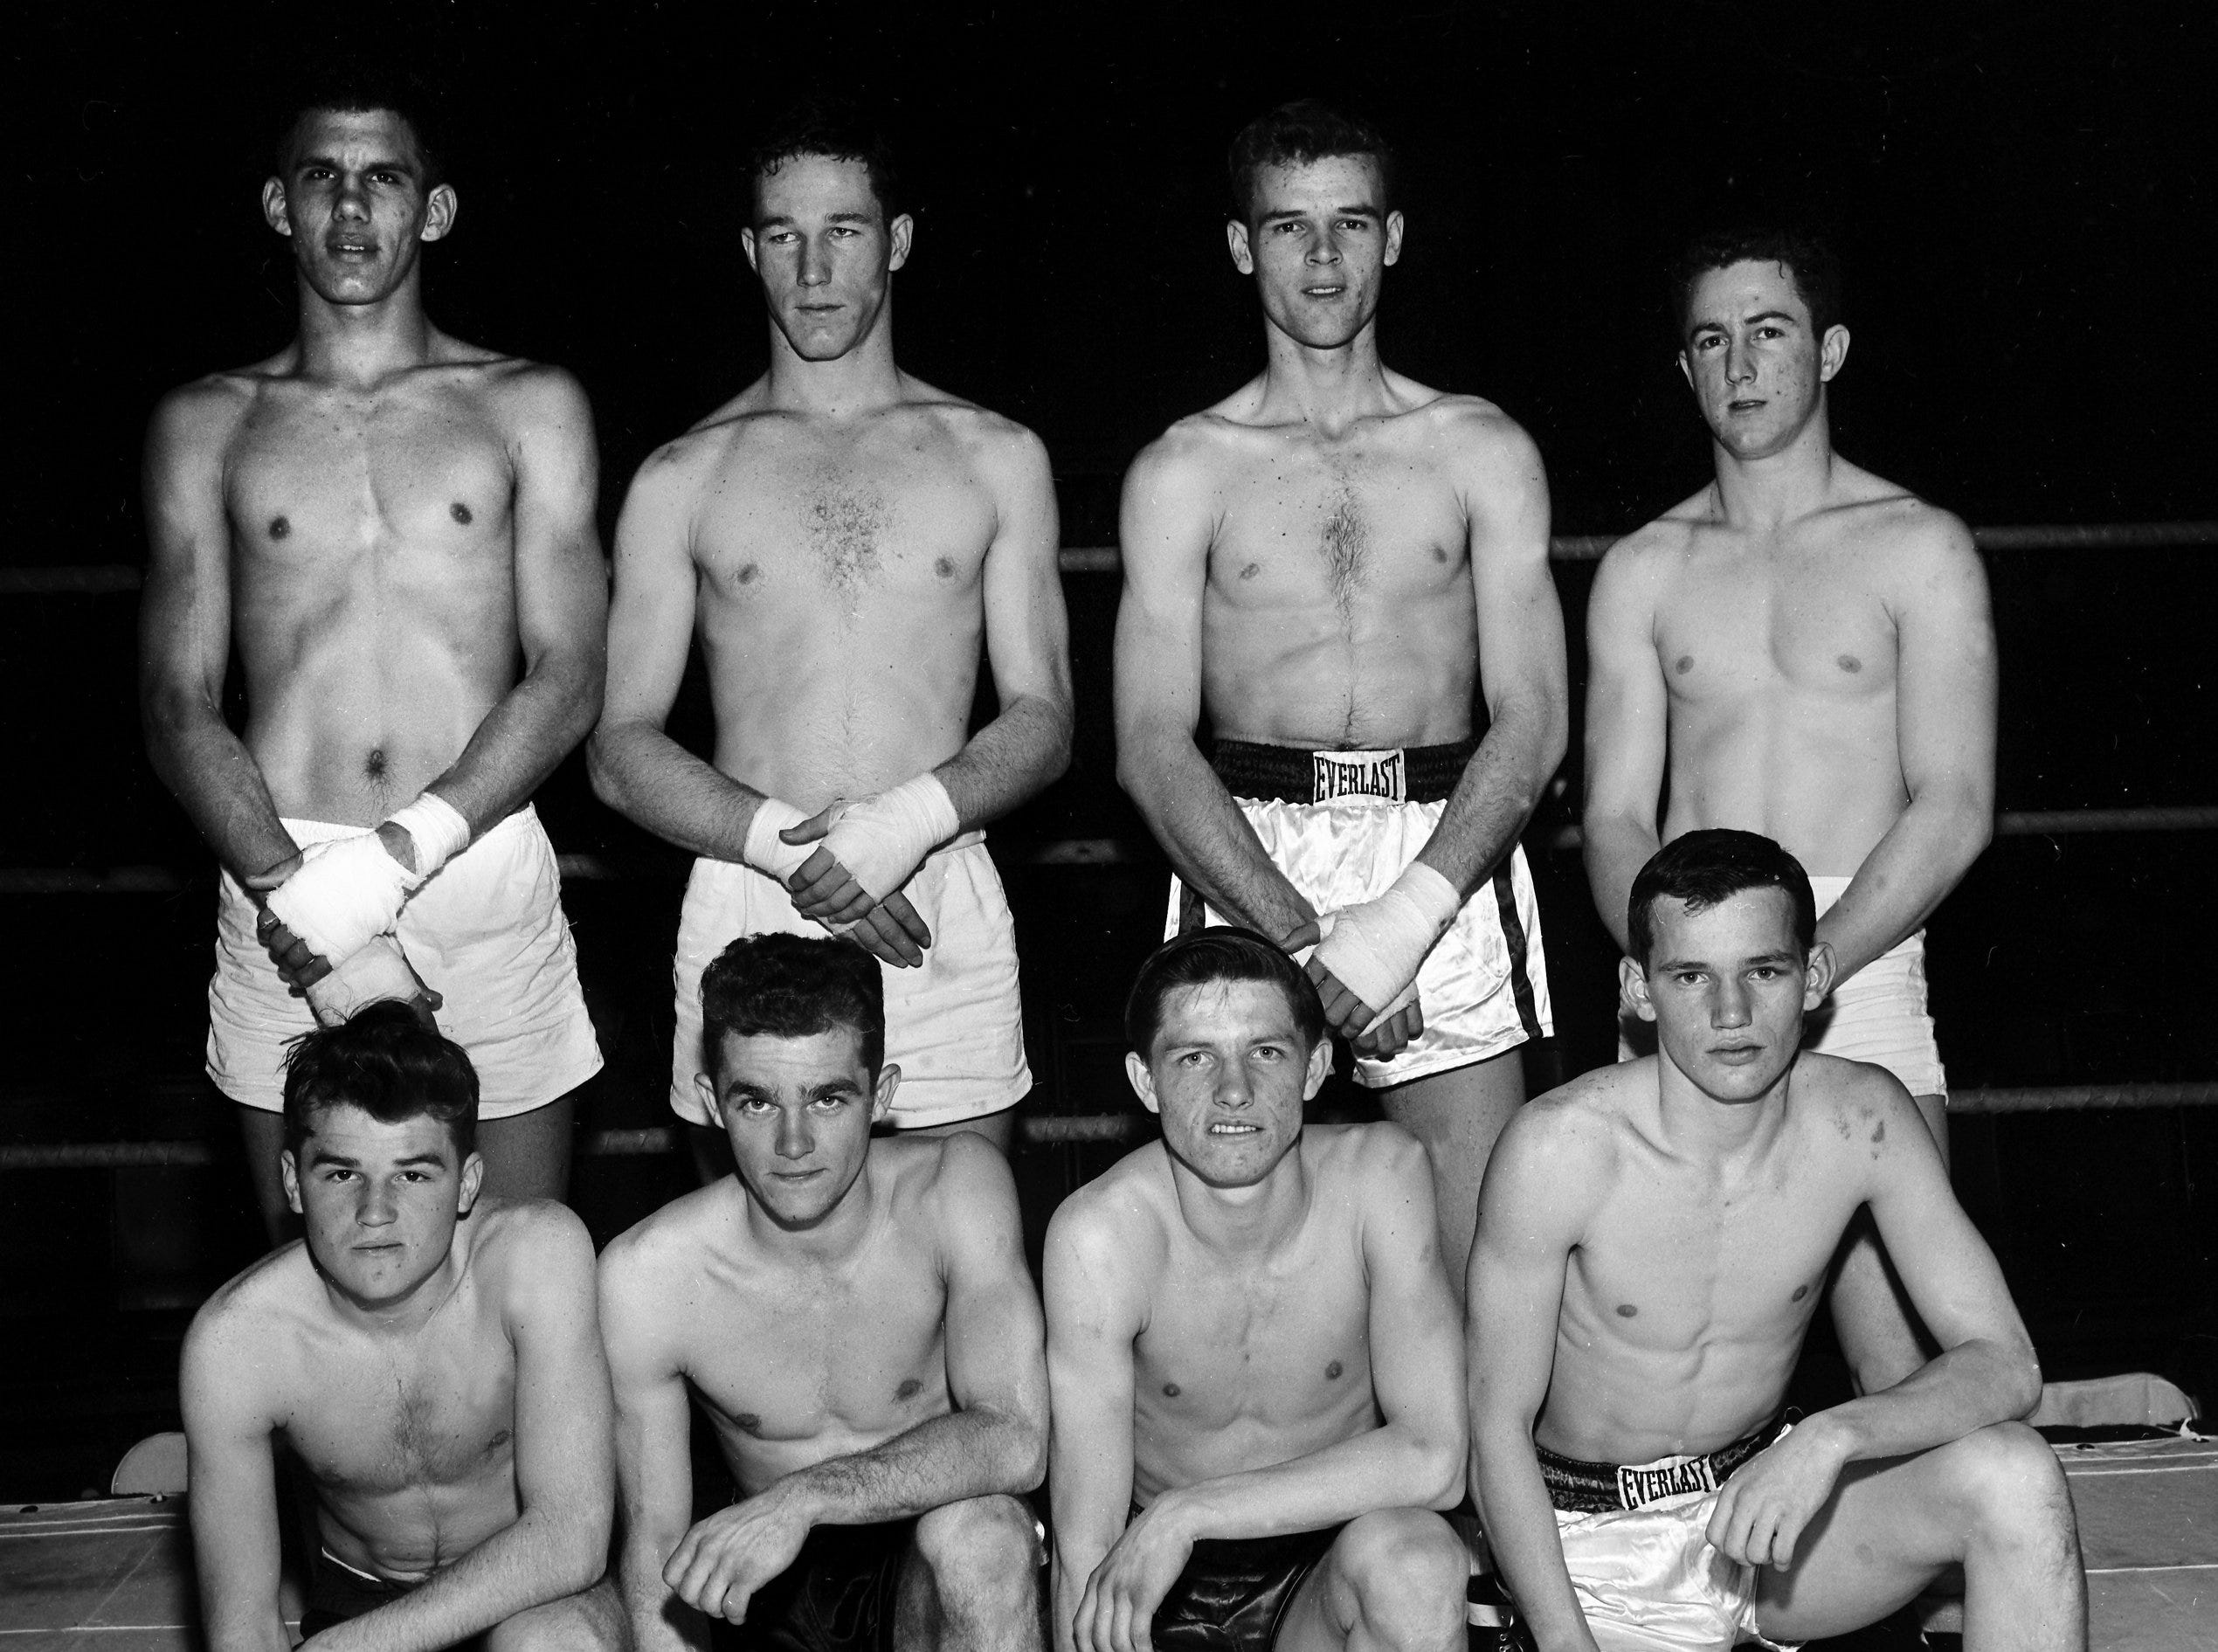 This crew of novices, pictured on 29 Jan 1956, will represent Memphis in the Mid-South Golden Gloves Tournament of Champions at the Auditorium.  They are (Front Row From Left) Keight Branch, flyweight; Herman Stephens, bantamweight; James Moultrie, featherweight and Jimmy Rinehart, lightweight.  Back Row (From Left) George Tiller, heavyweight; Charles Sorsby, lightweight; J.D. Rutherford, middleweight and Johnny Casone, welterweight.